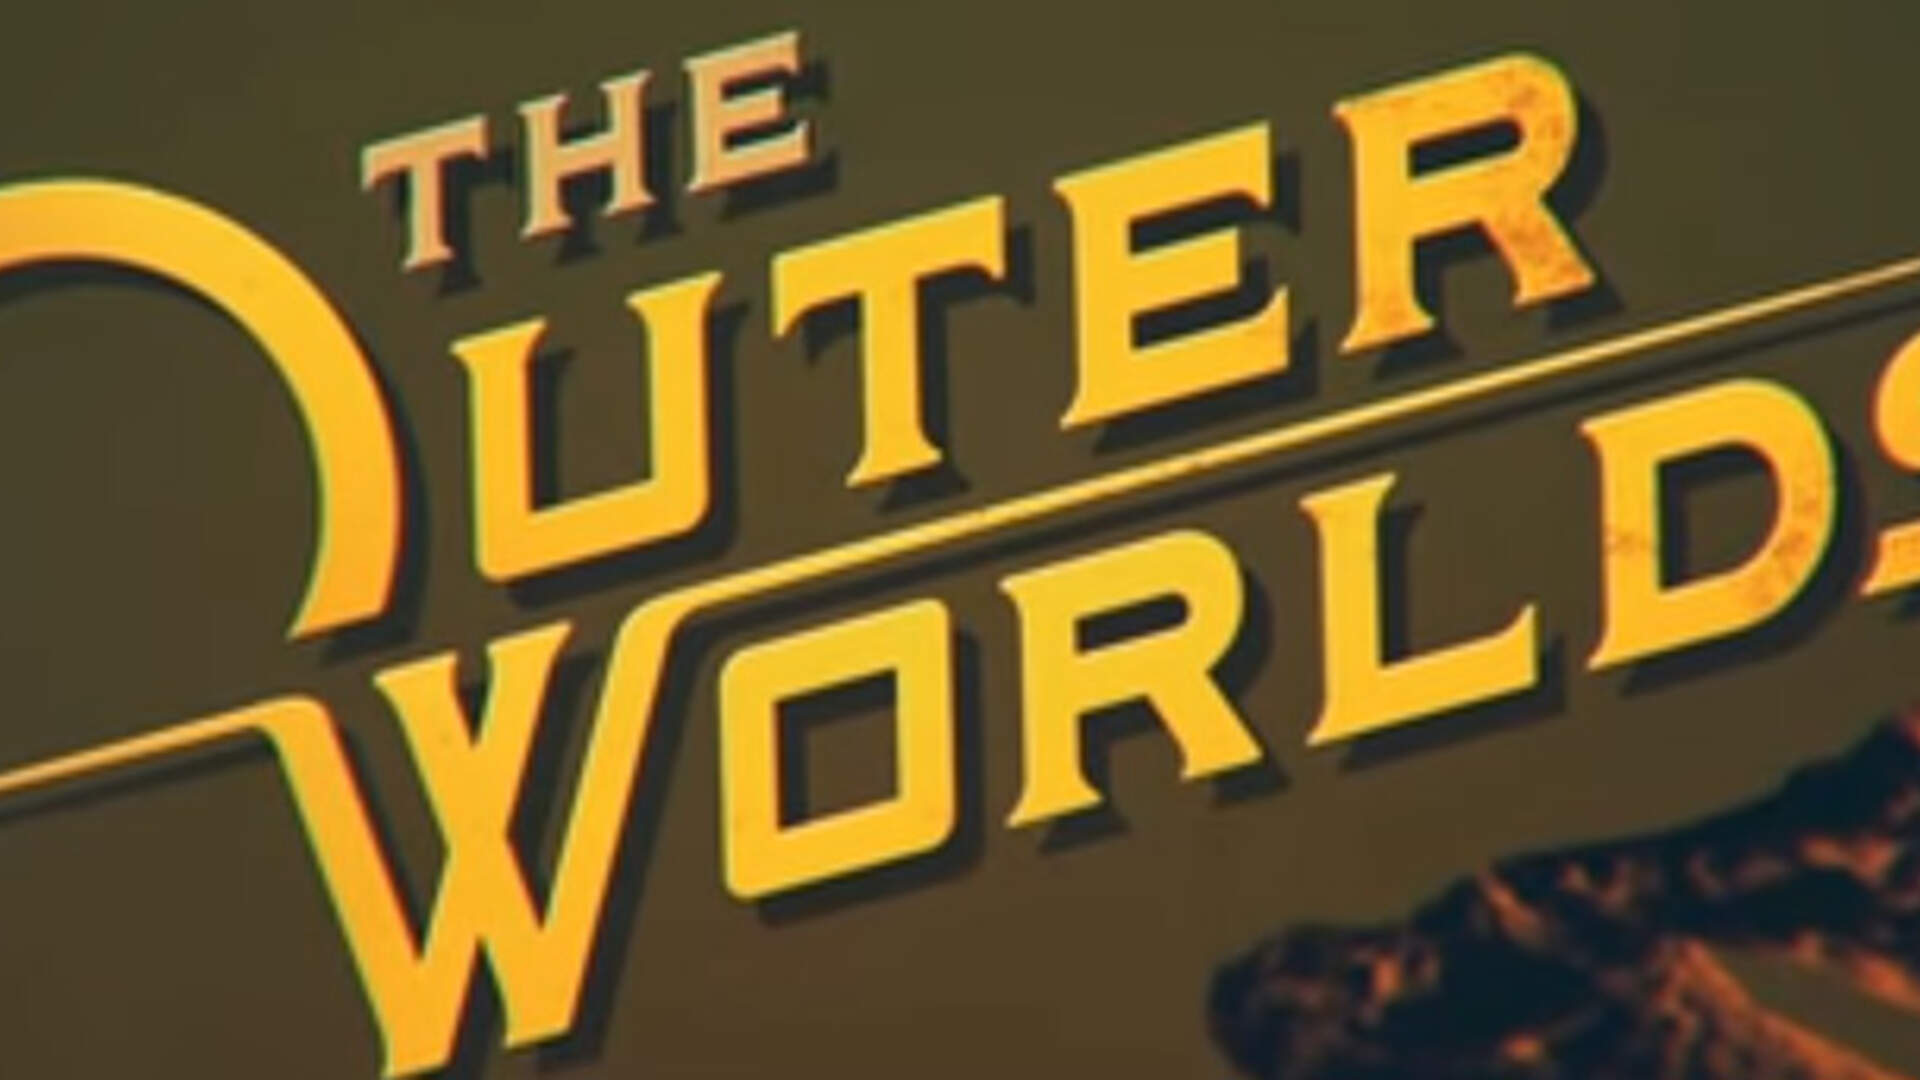 Starfield Has Competition With Obsidian's The Outer Worlds